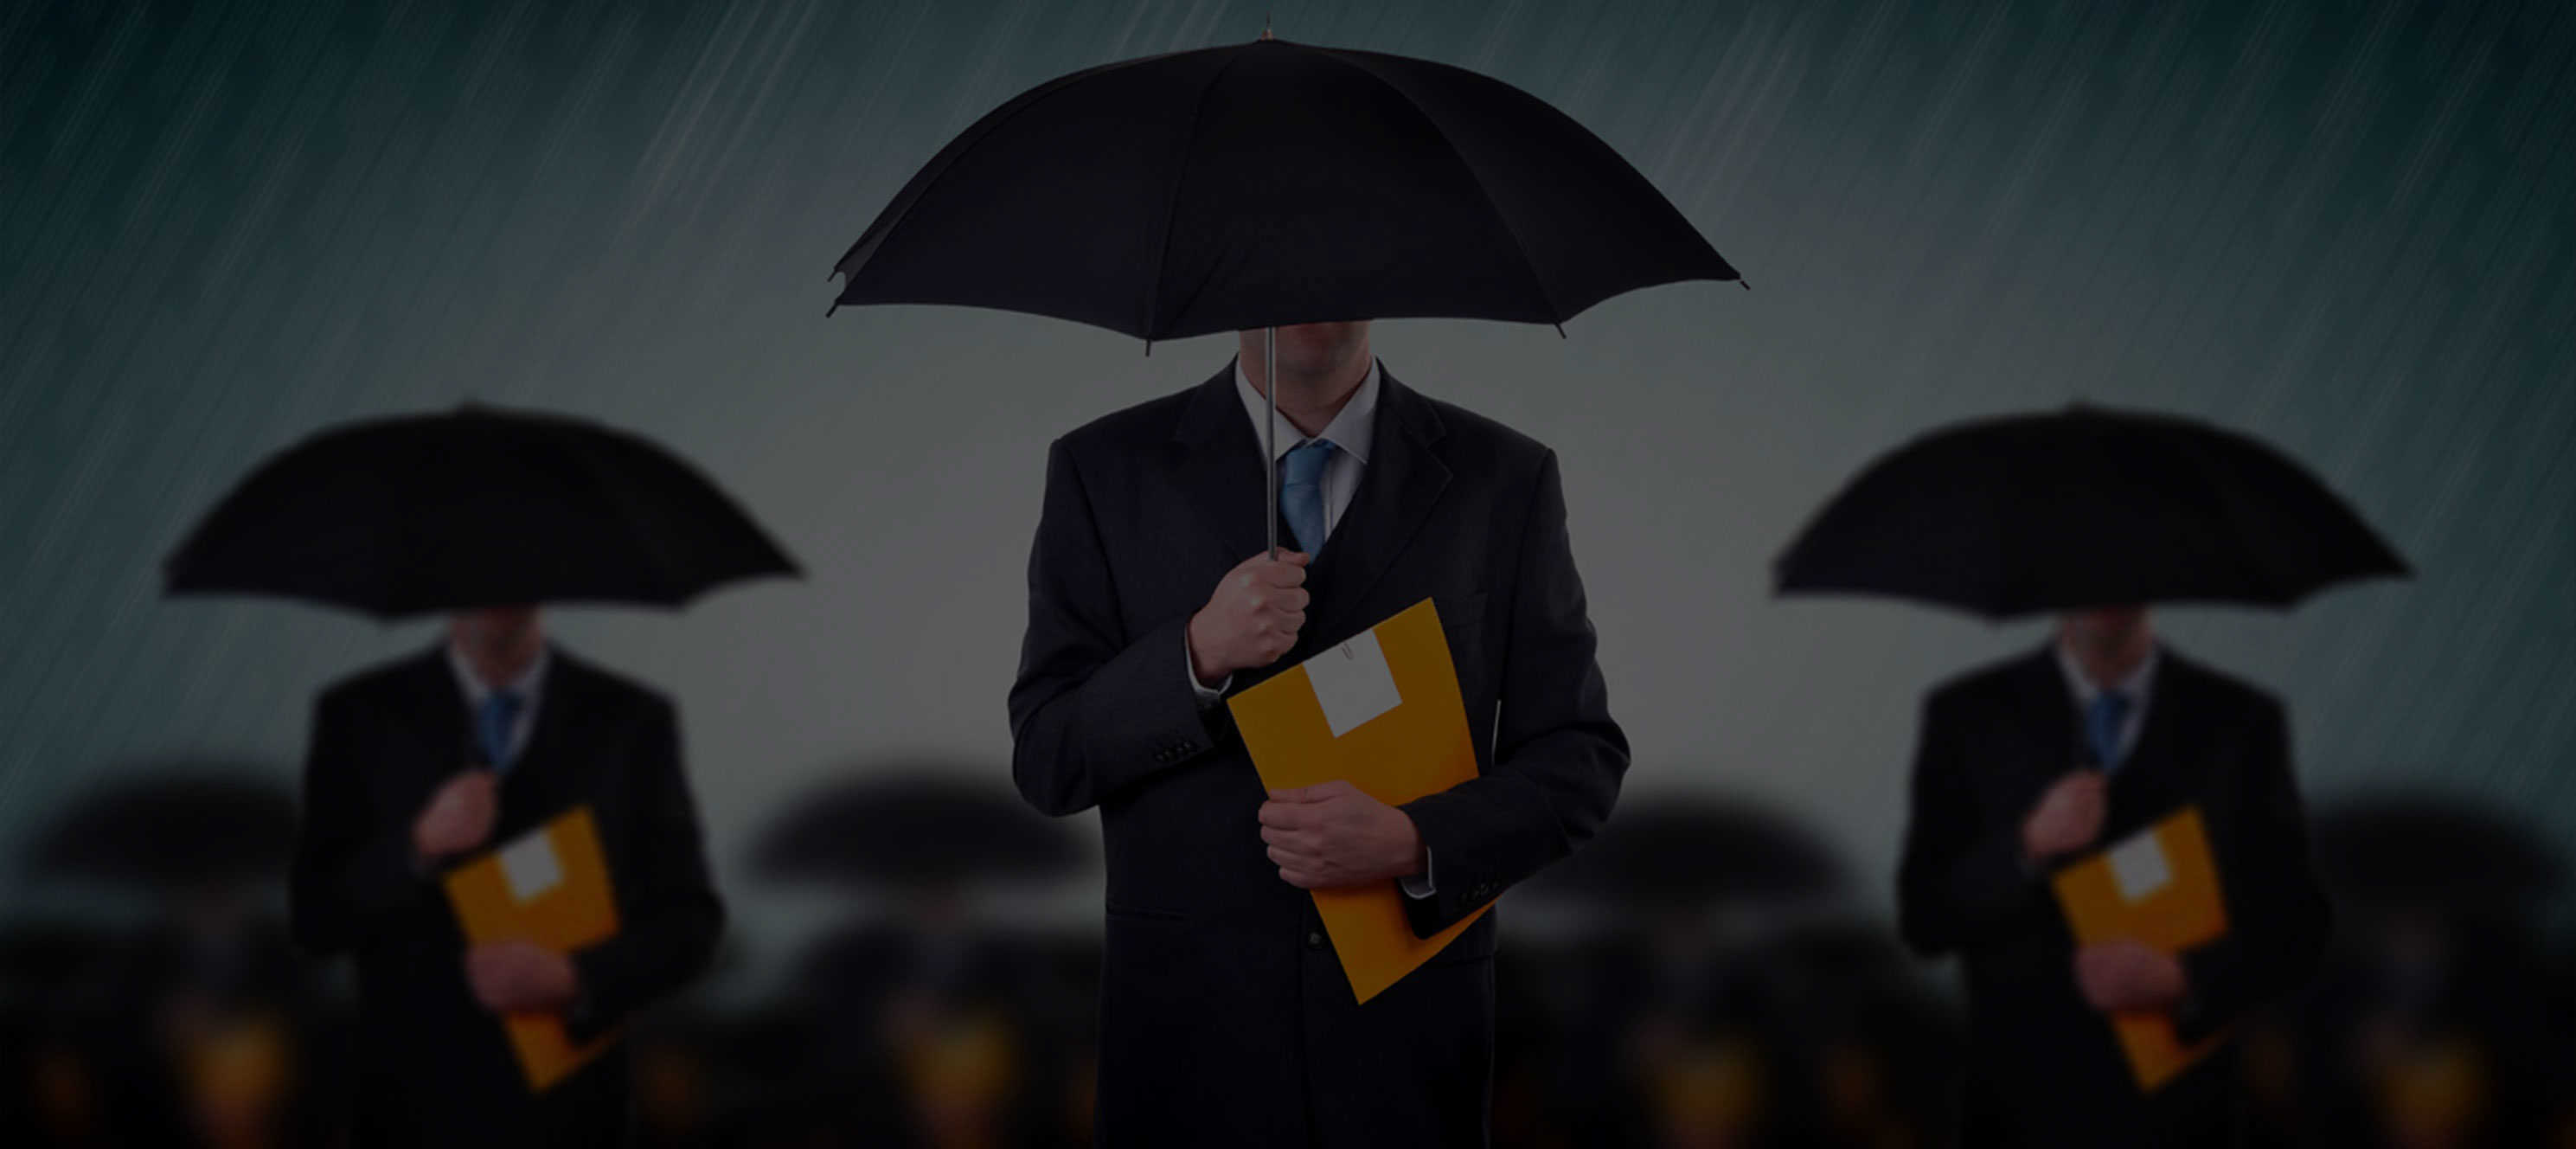 Three men in suits holding umbrellas and envelopes